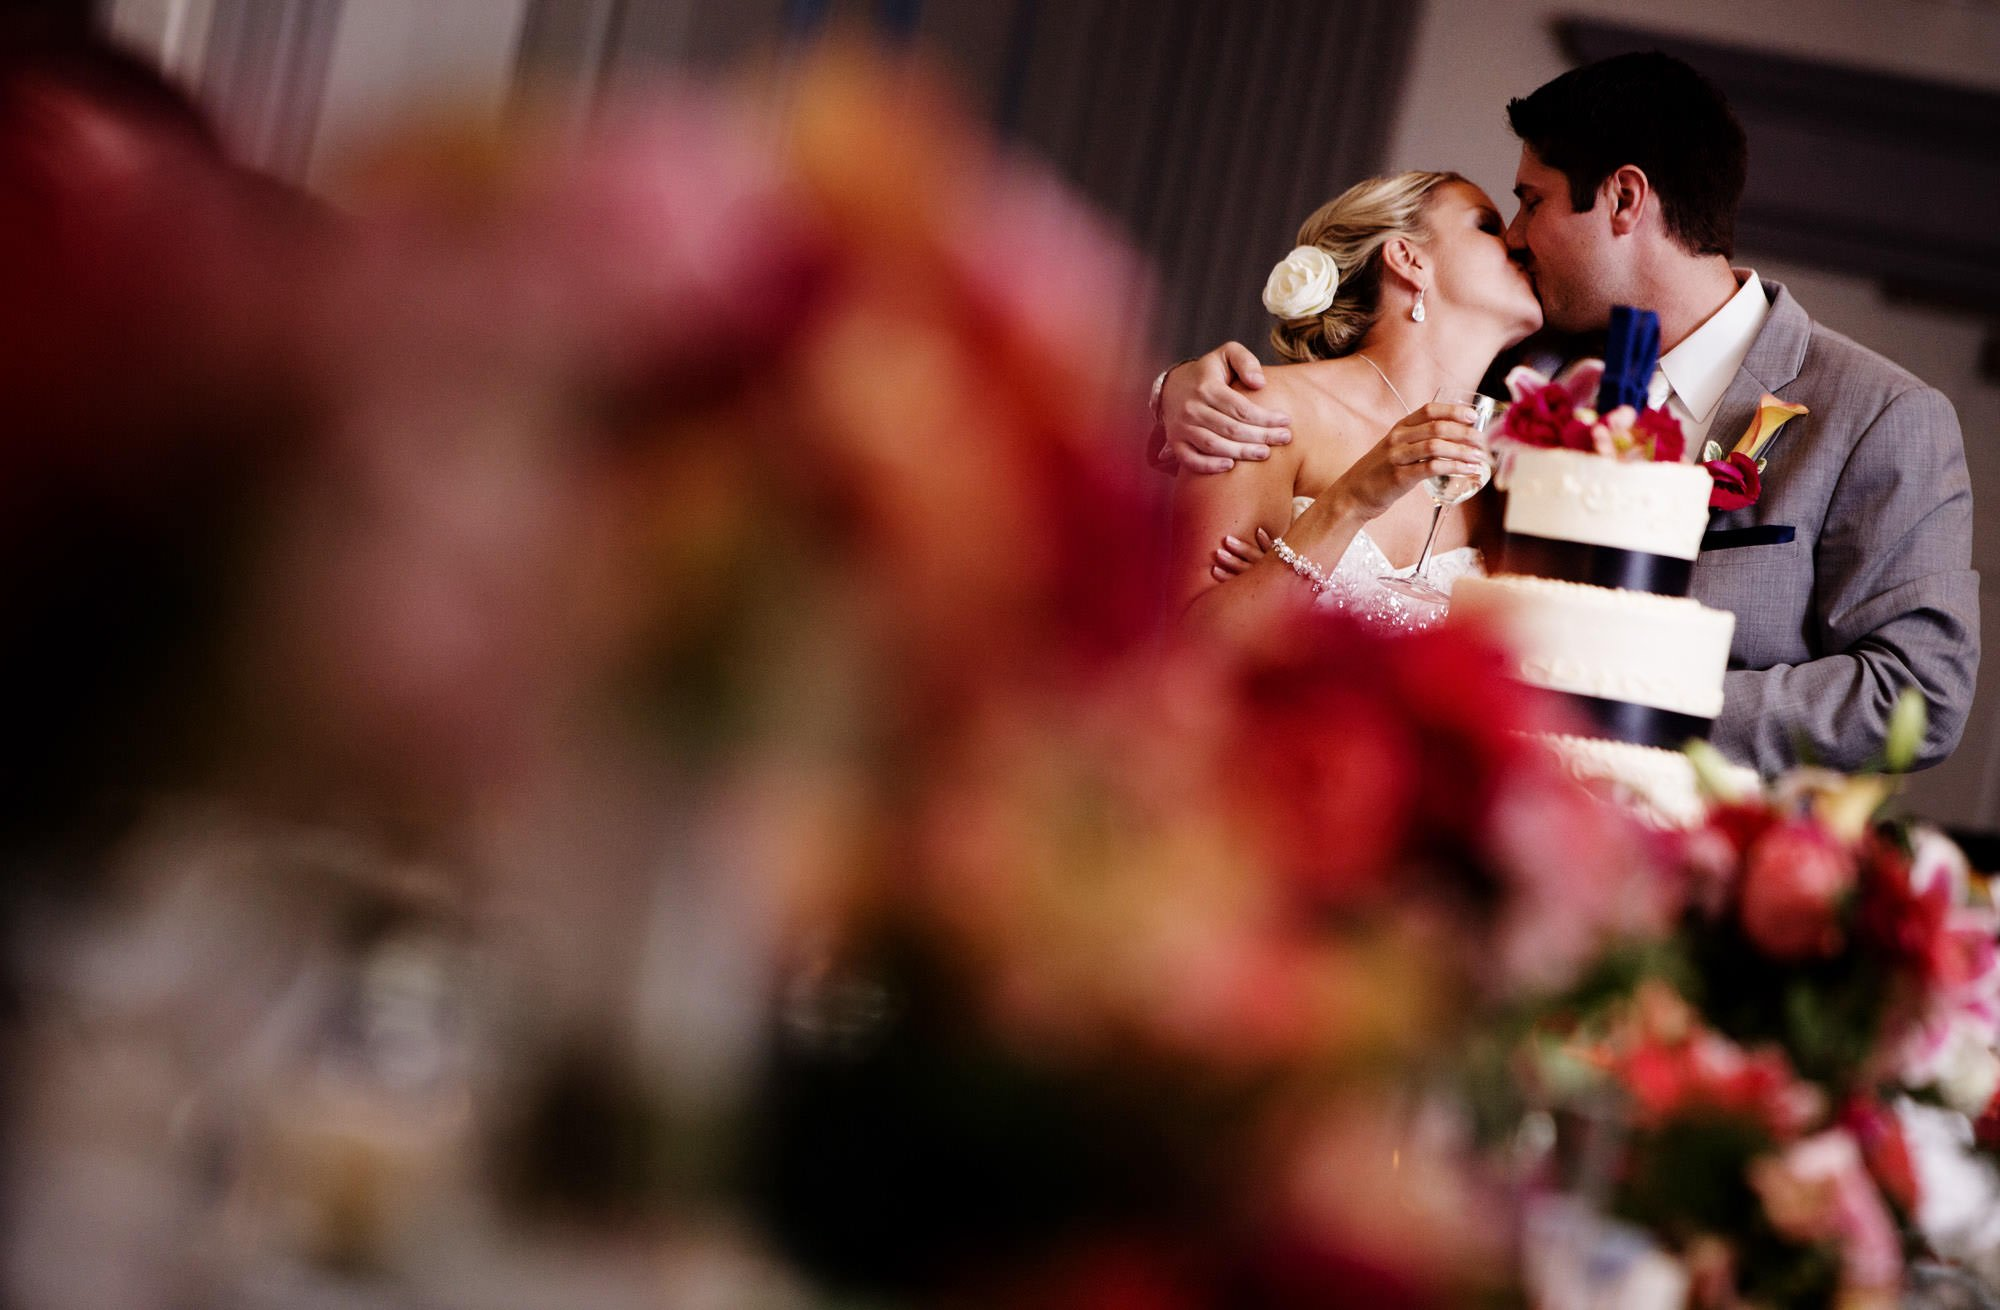 The bride and groom cut the cake during the wedding reception at their Nittany Lion Inn wedding.